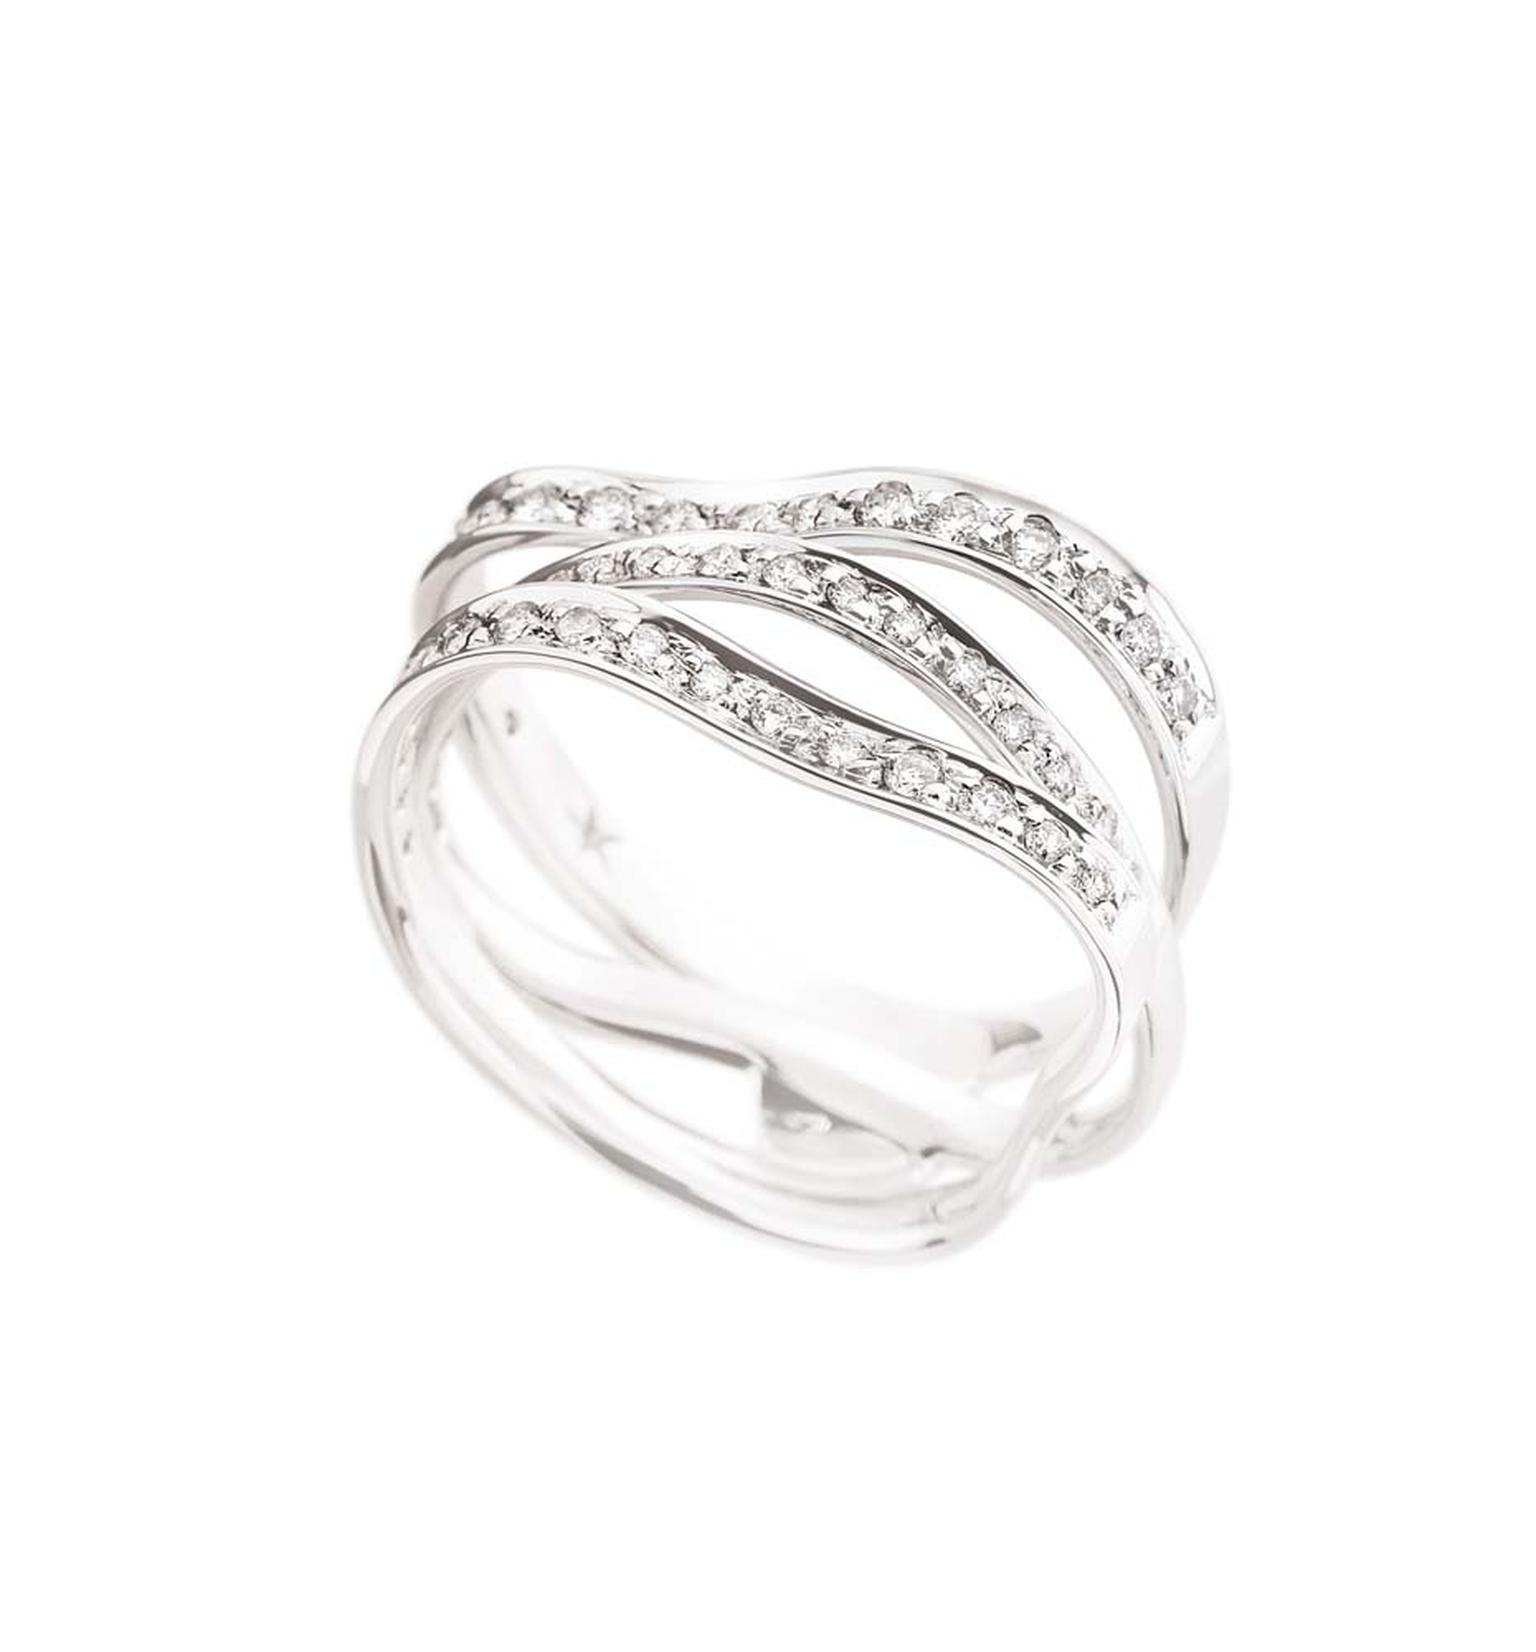 H.Stern's 2008 Oscar Niemeyer collection white gold ring featuring white gold and diamonds set together with three waves.